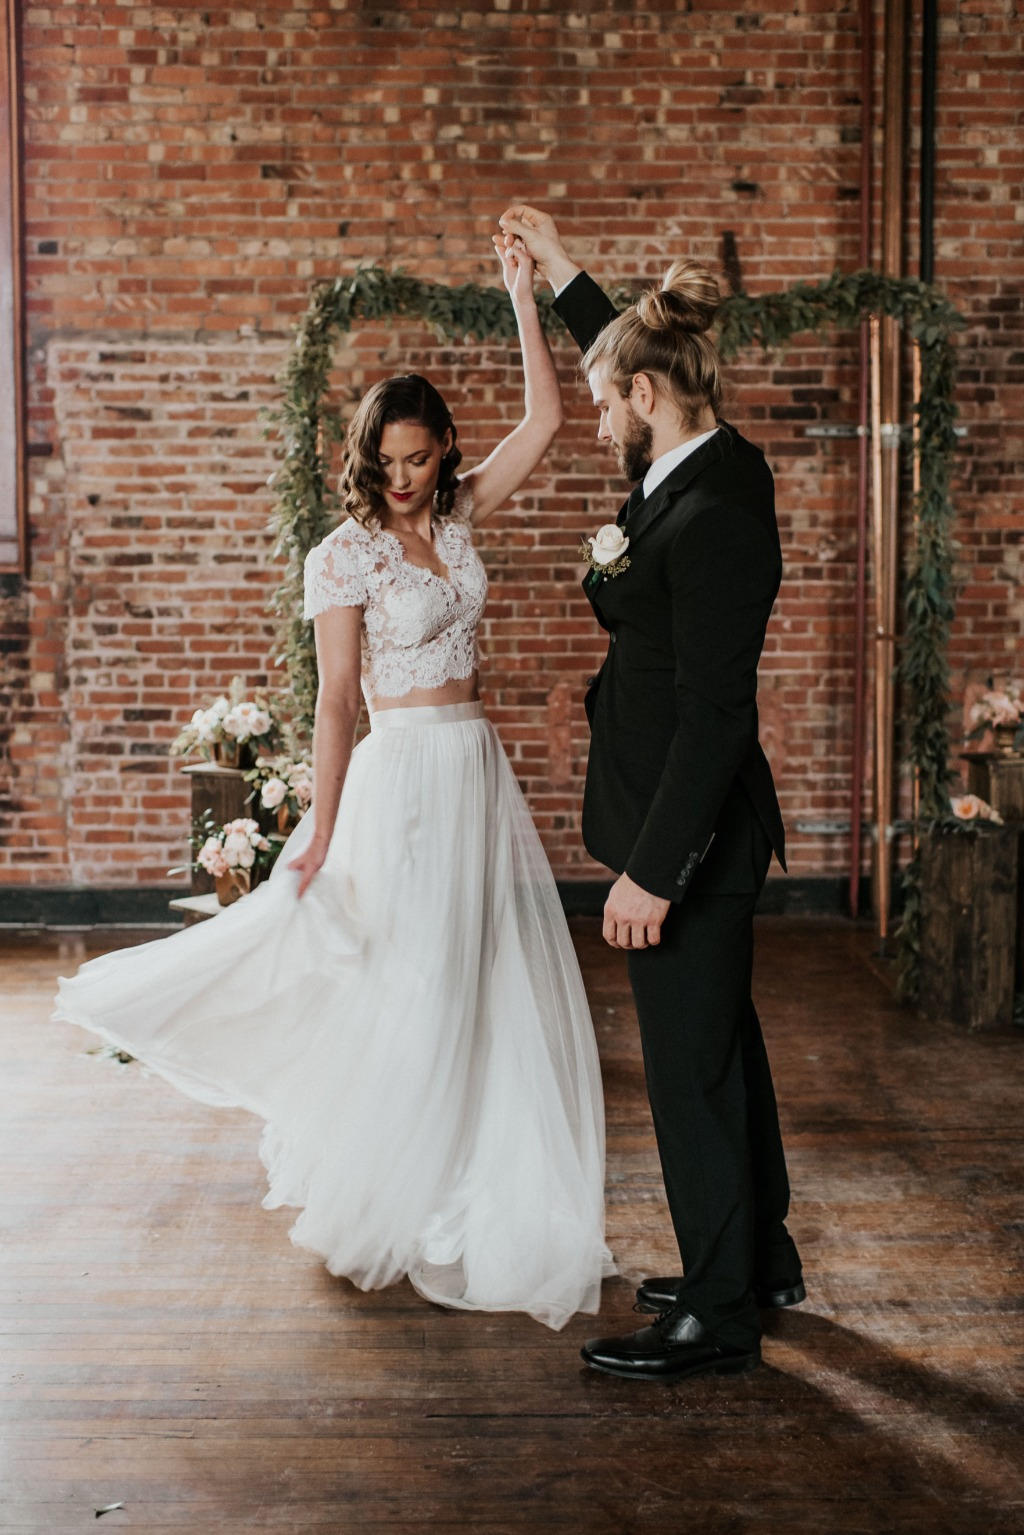 NEW YEARS EVE WEDDING EDITORIAL. Dress: Lea-Ann Belter Abigail top and May skirt | photographer: Kimberly Schuldt | vintage rentals